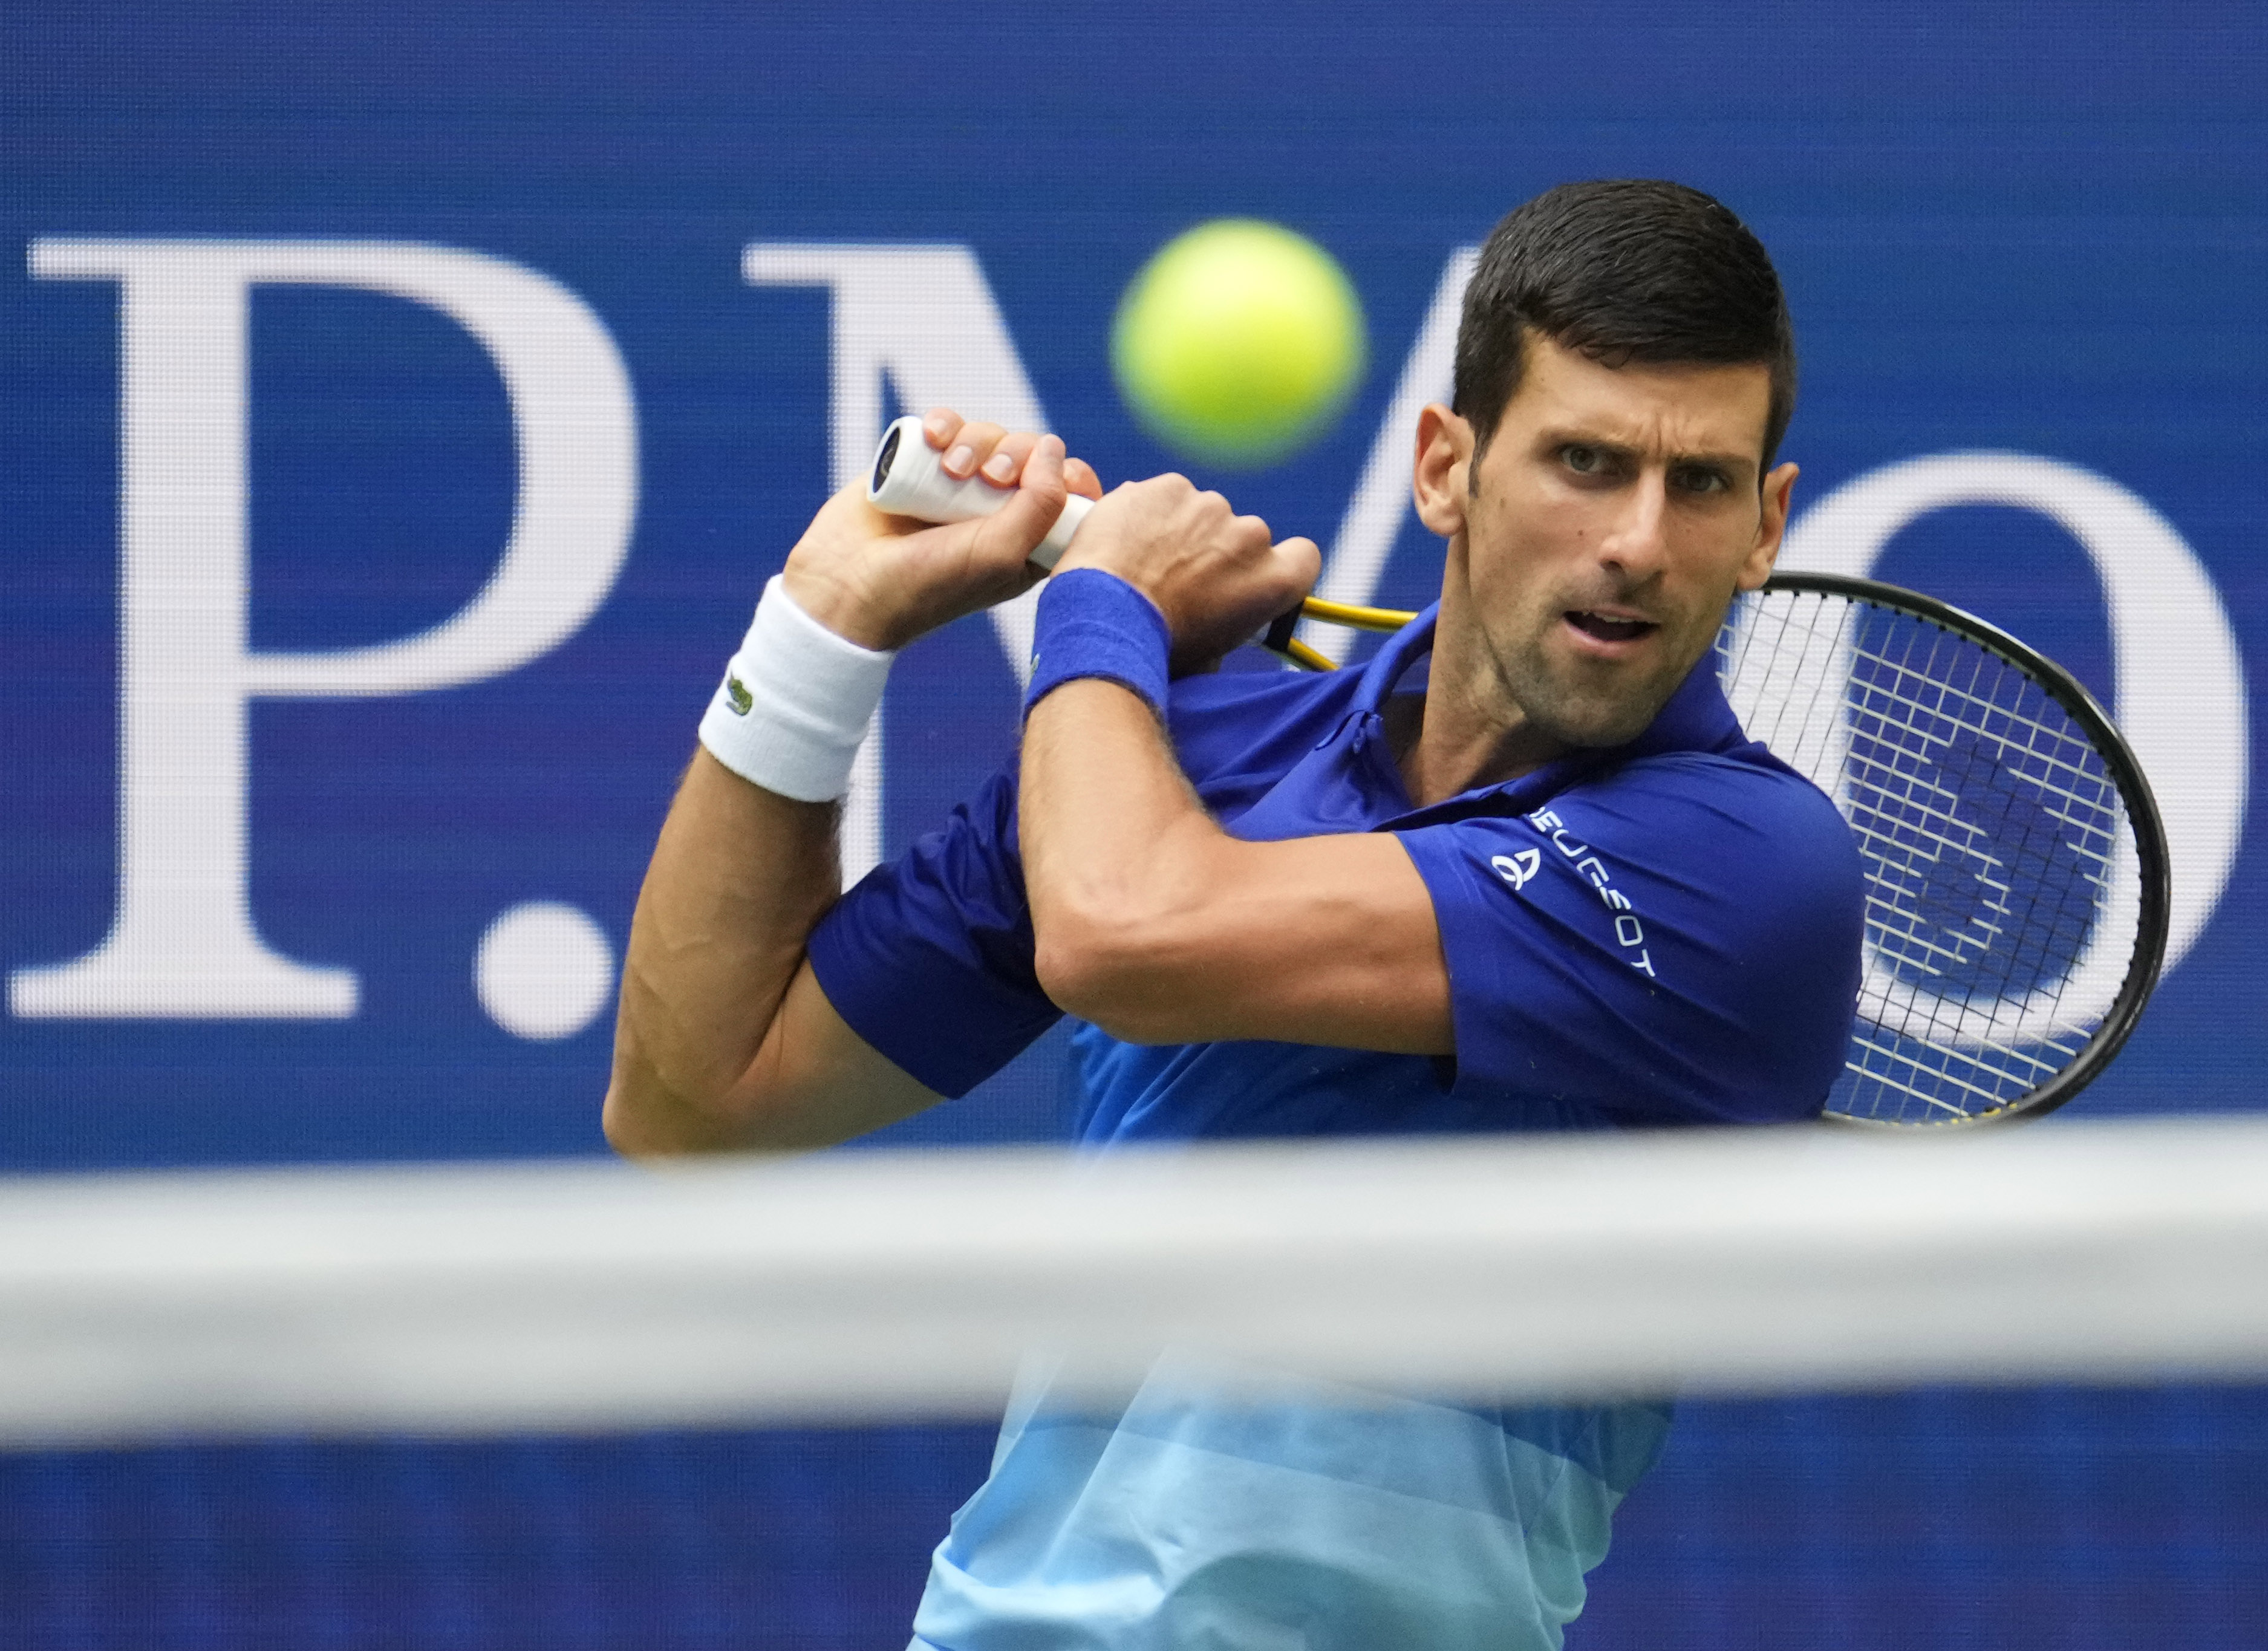 Sep 12, 2021; Flushing, NY, USA; Novak Djokovic of Serbia hits to Daniil Medvedev of Russia in the men's singles final on day fourteen of the 2021 U.S. Open tennis tournament at USTA Billie Jean King National Tennis Center. Mandatory Credit: Robert Deutsch-USA TODAY Sports/File photo